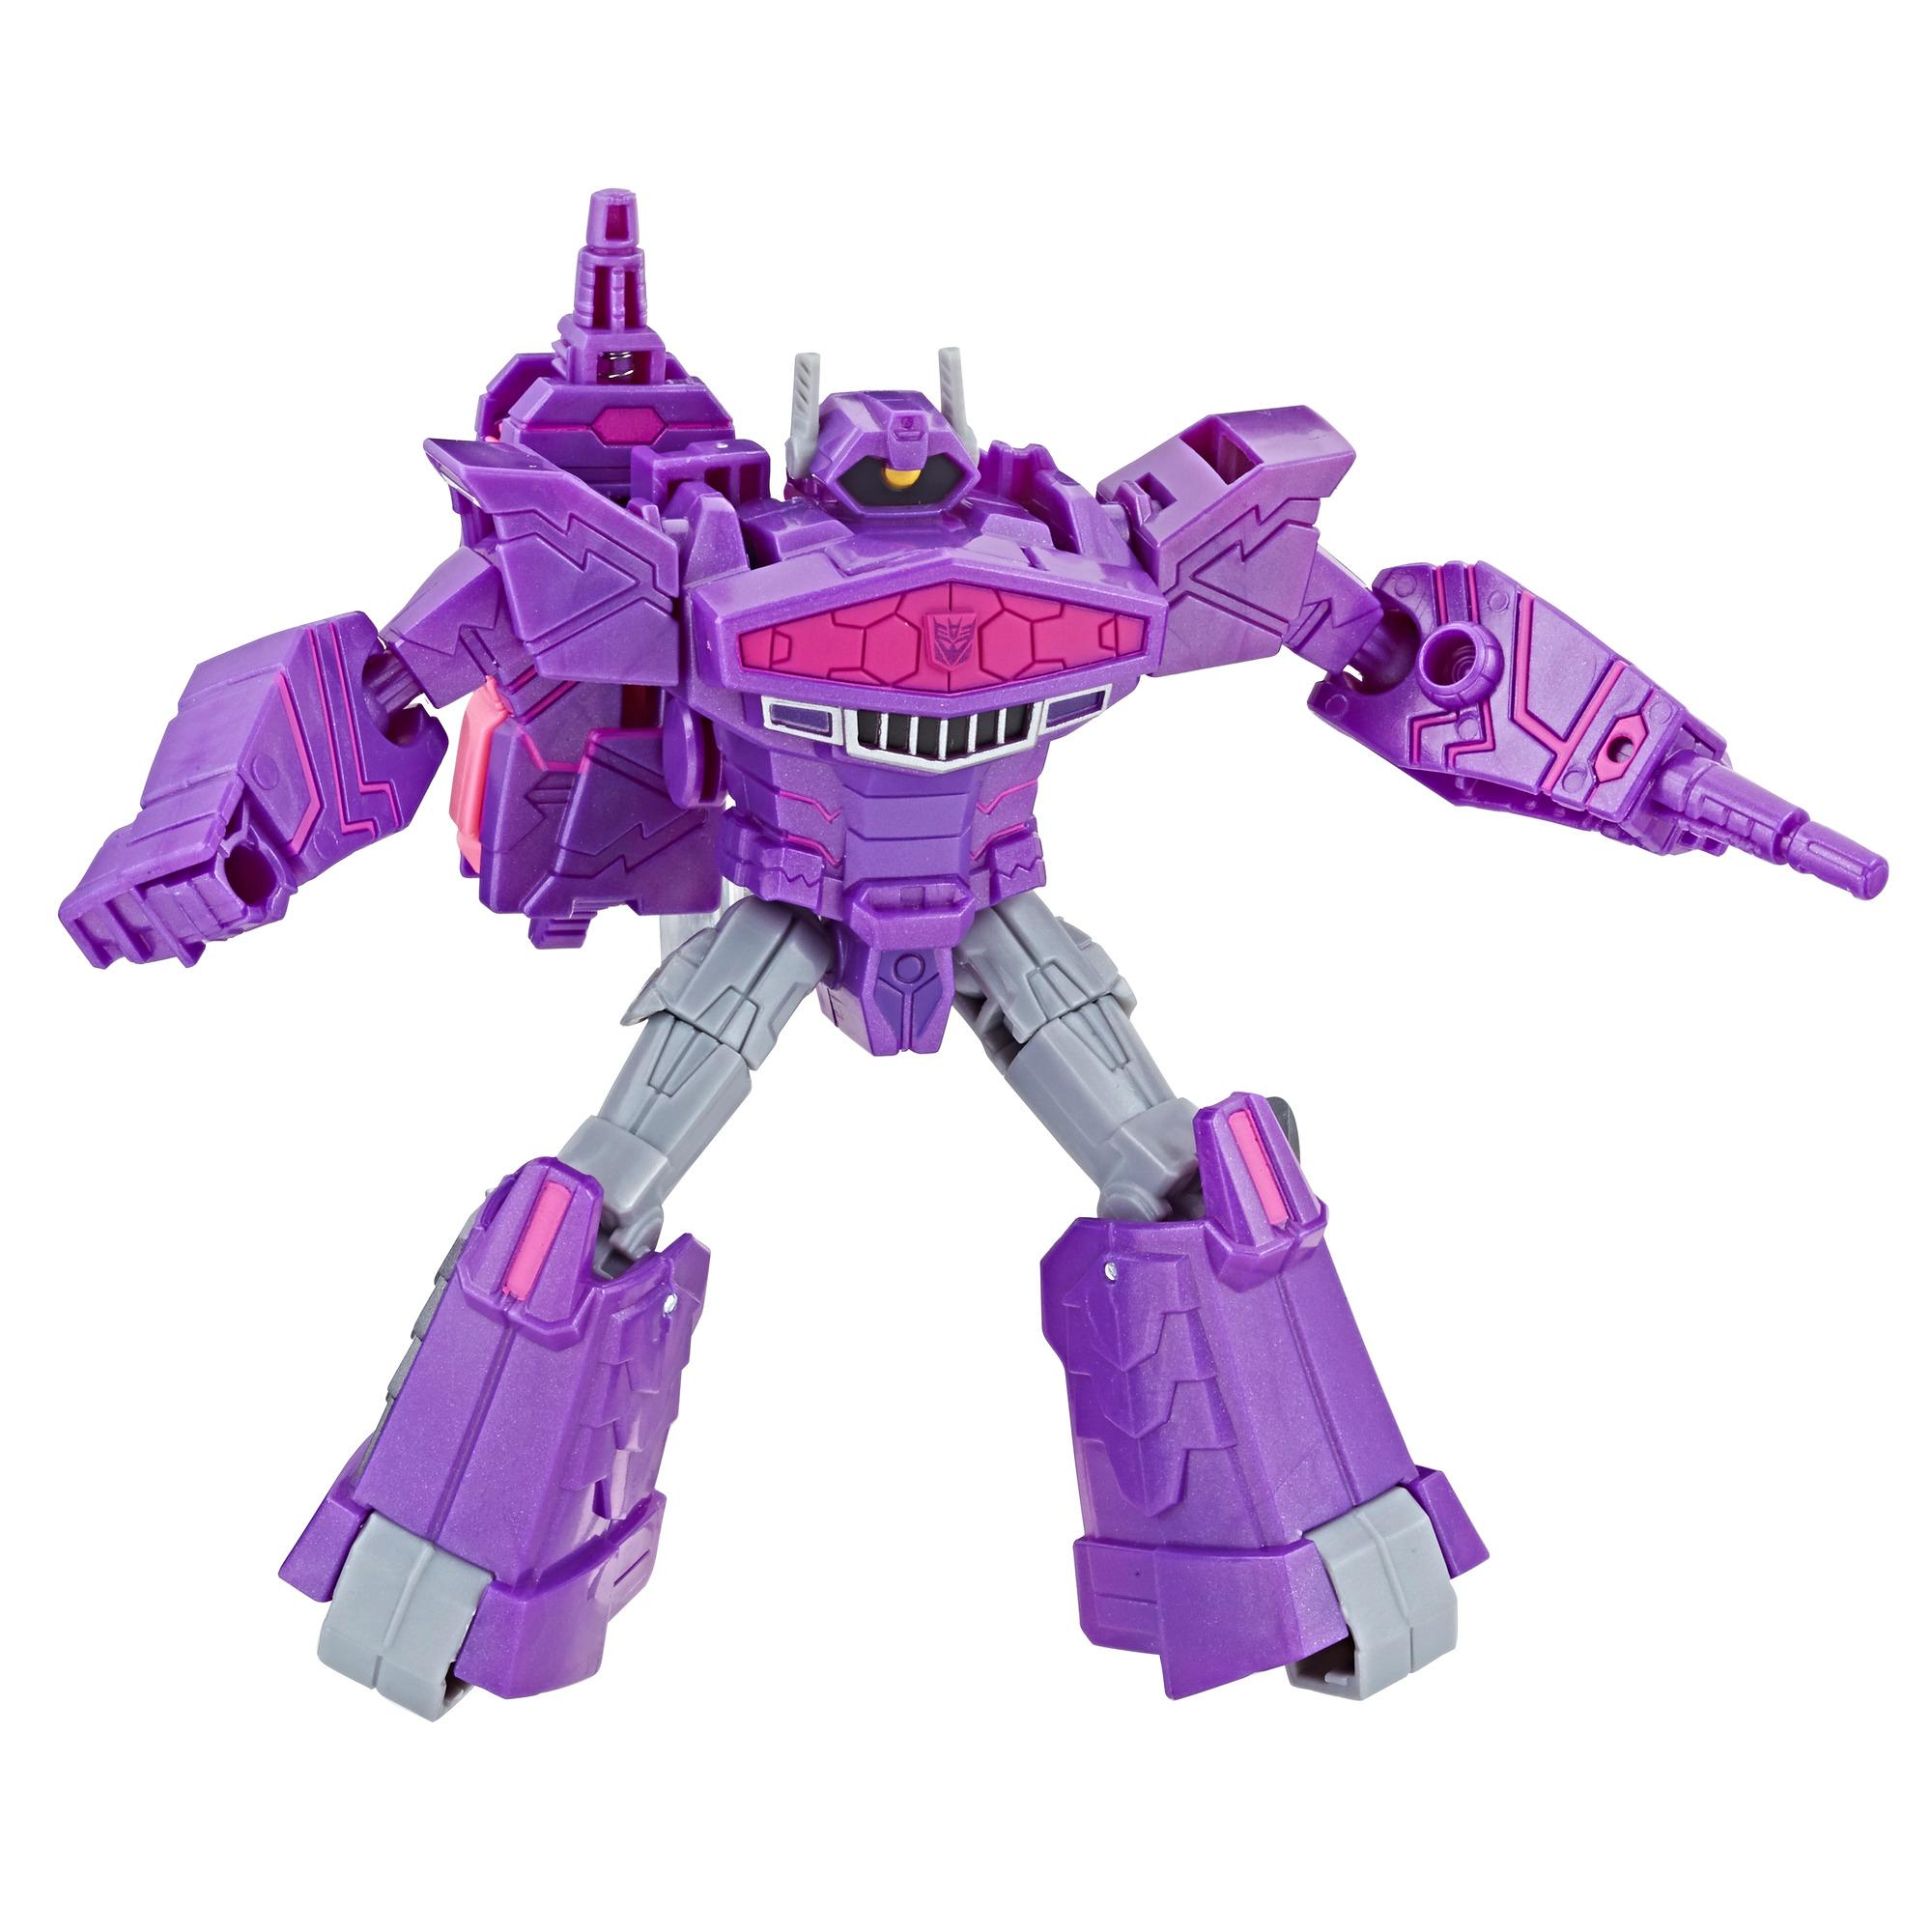 Transformers Cyberverse classe warrior Decepticon Shockwave